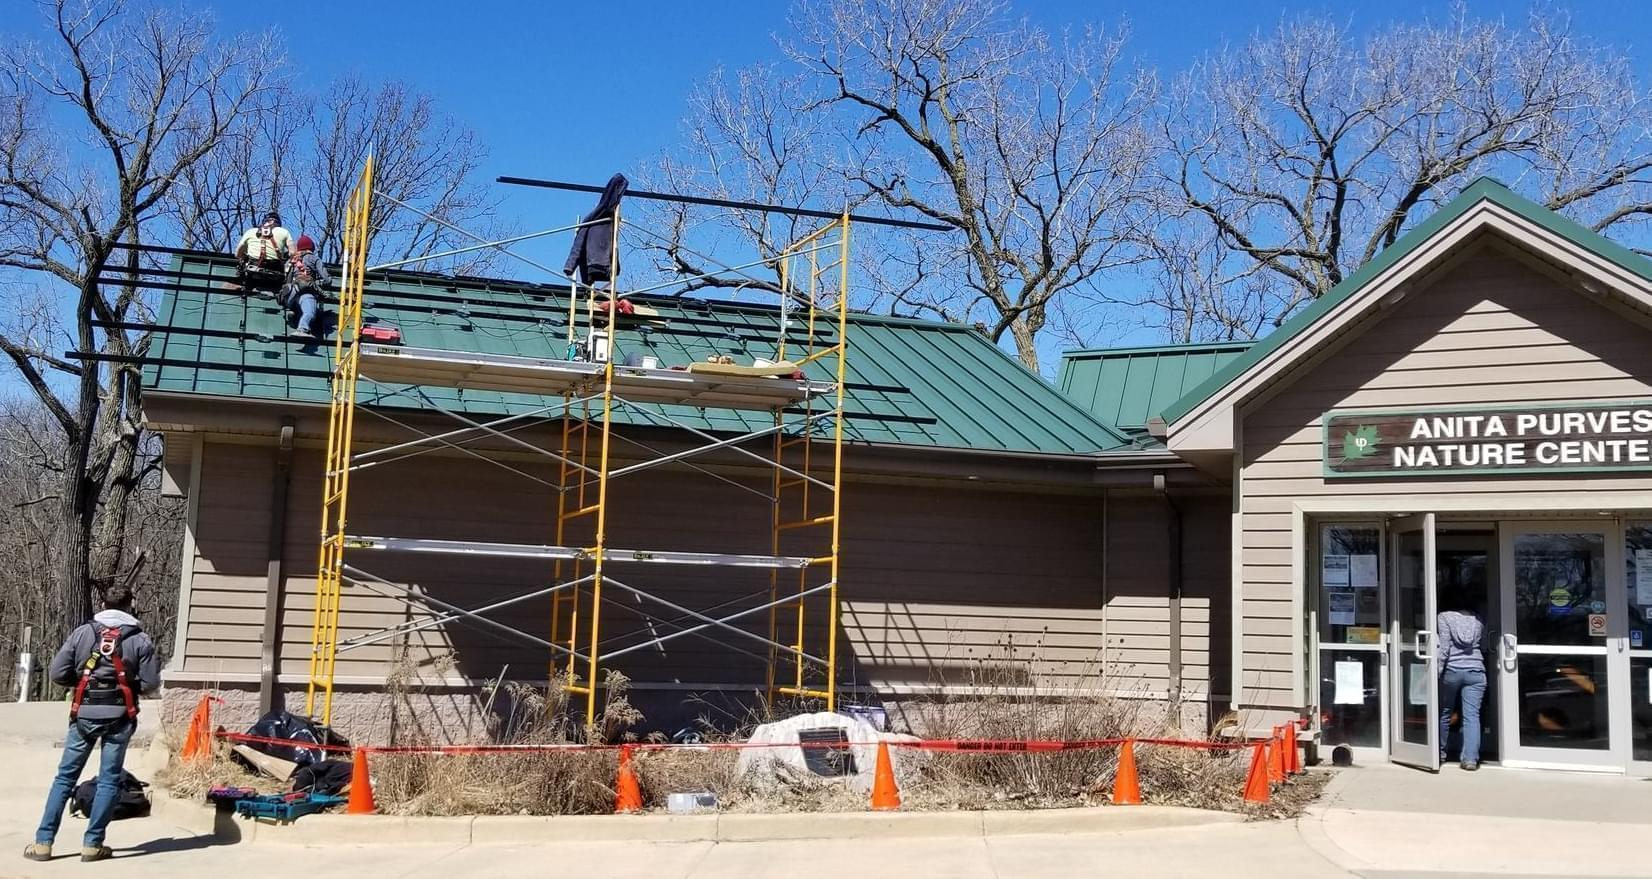 Workers install solar panels on the roof of the Anita Purves Nature Center, at Crystal Lake Park in Urbana.